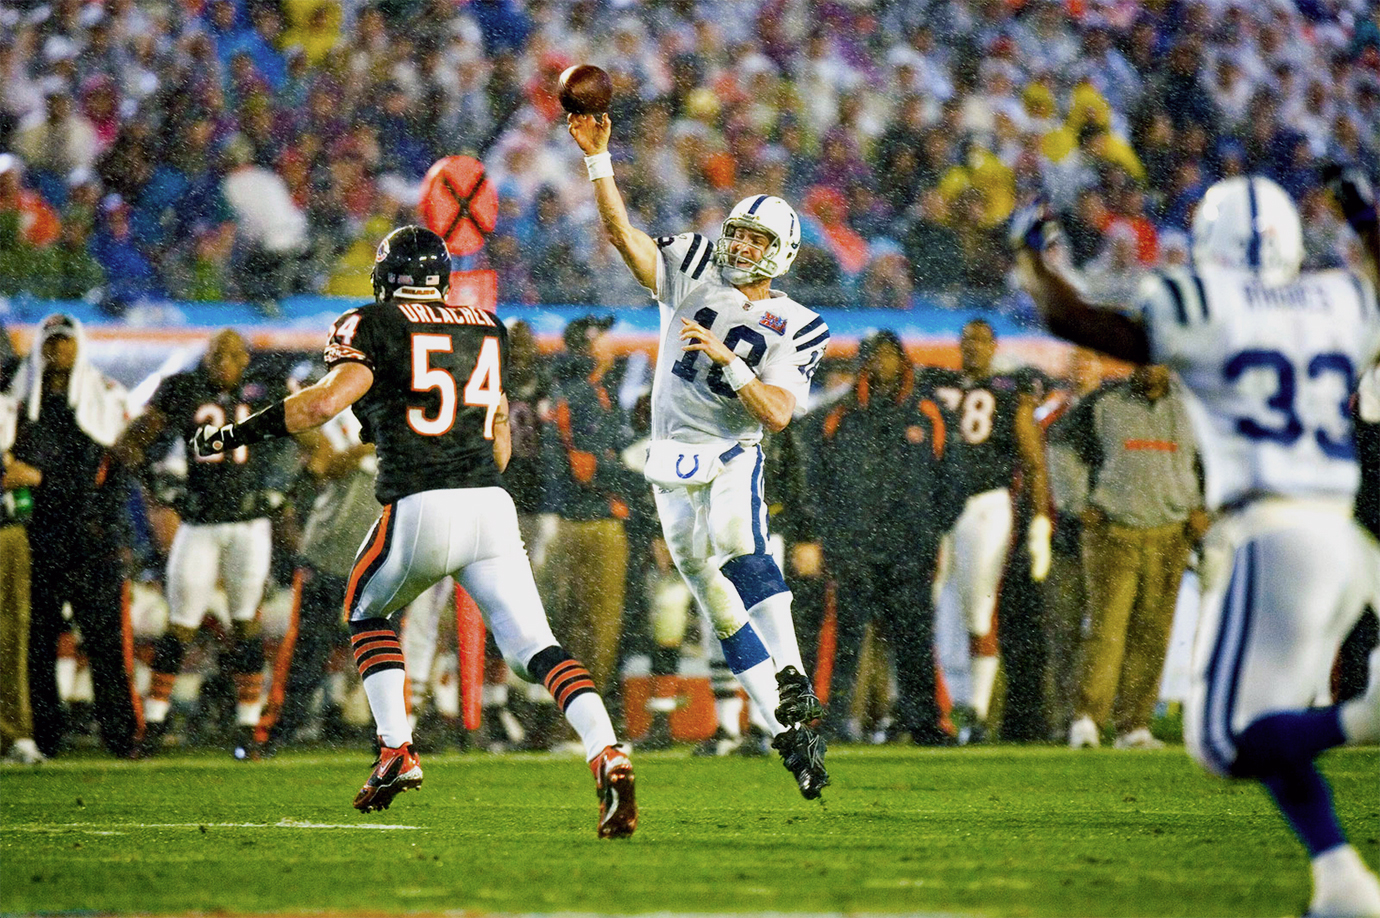 Indianapolis Colts quarterback Peyton Manning throws an off-balance pass against the Chicago Bears. Manning led the Colts to a 29-17 victory, giving him his only Super Bowl title.